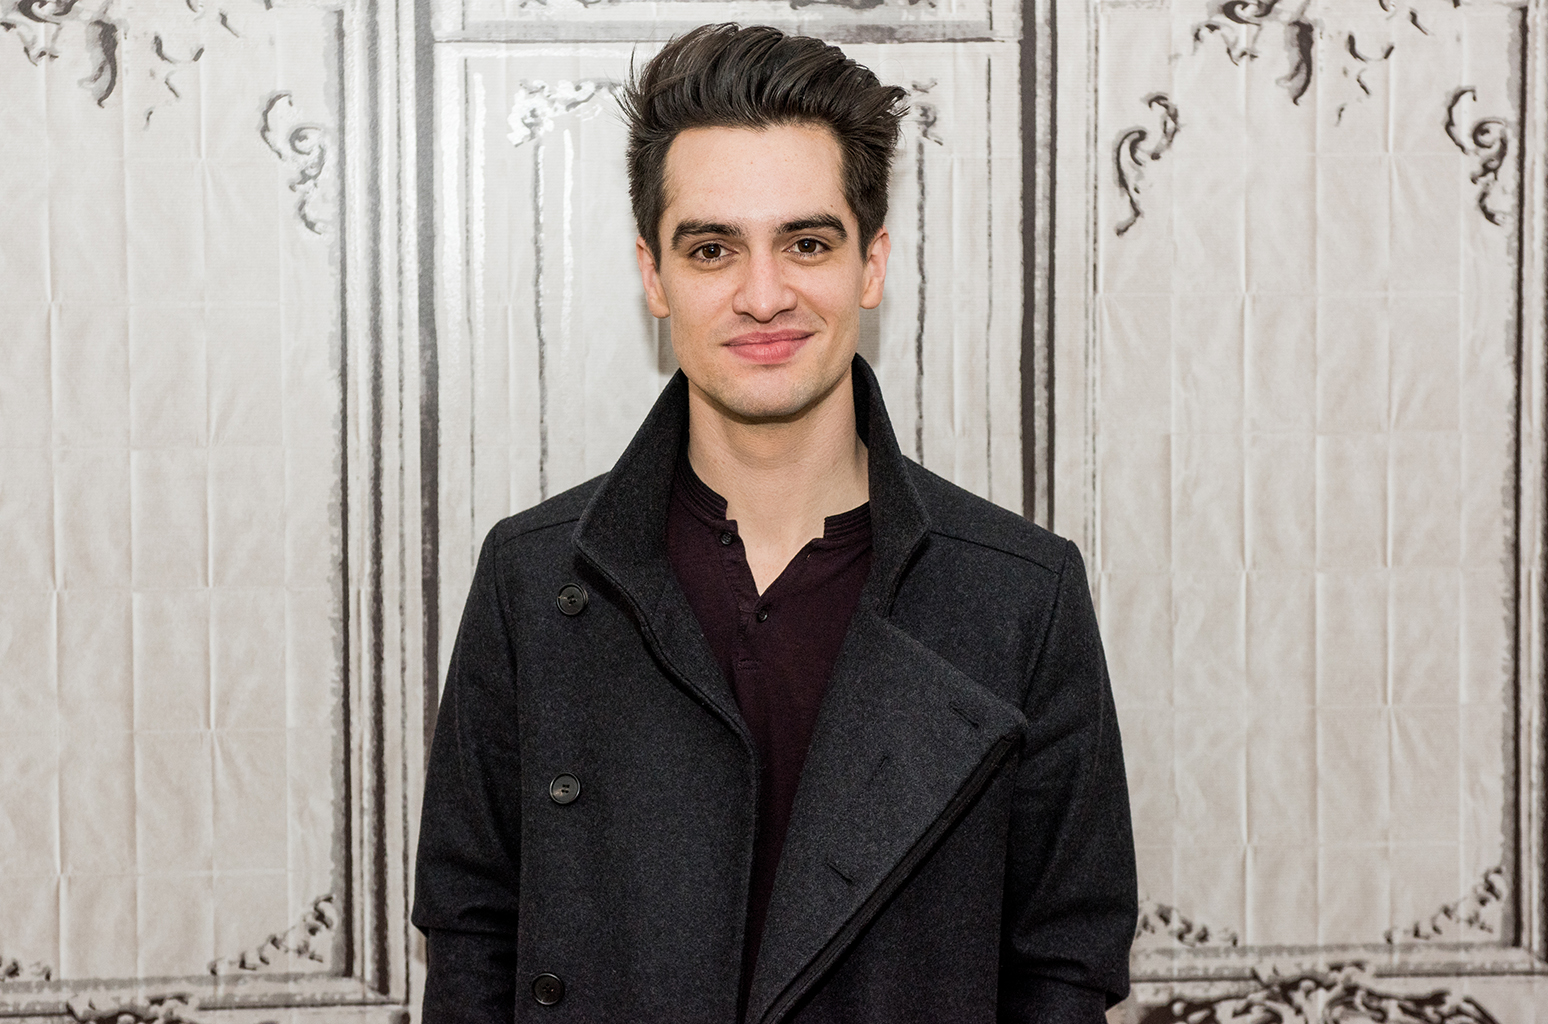 The 30-year old son of father (?) and mother(?), 175 cm tall Brendon Urie in 2018 photo